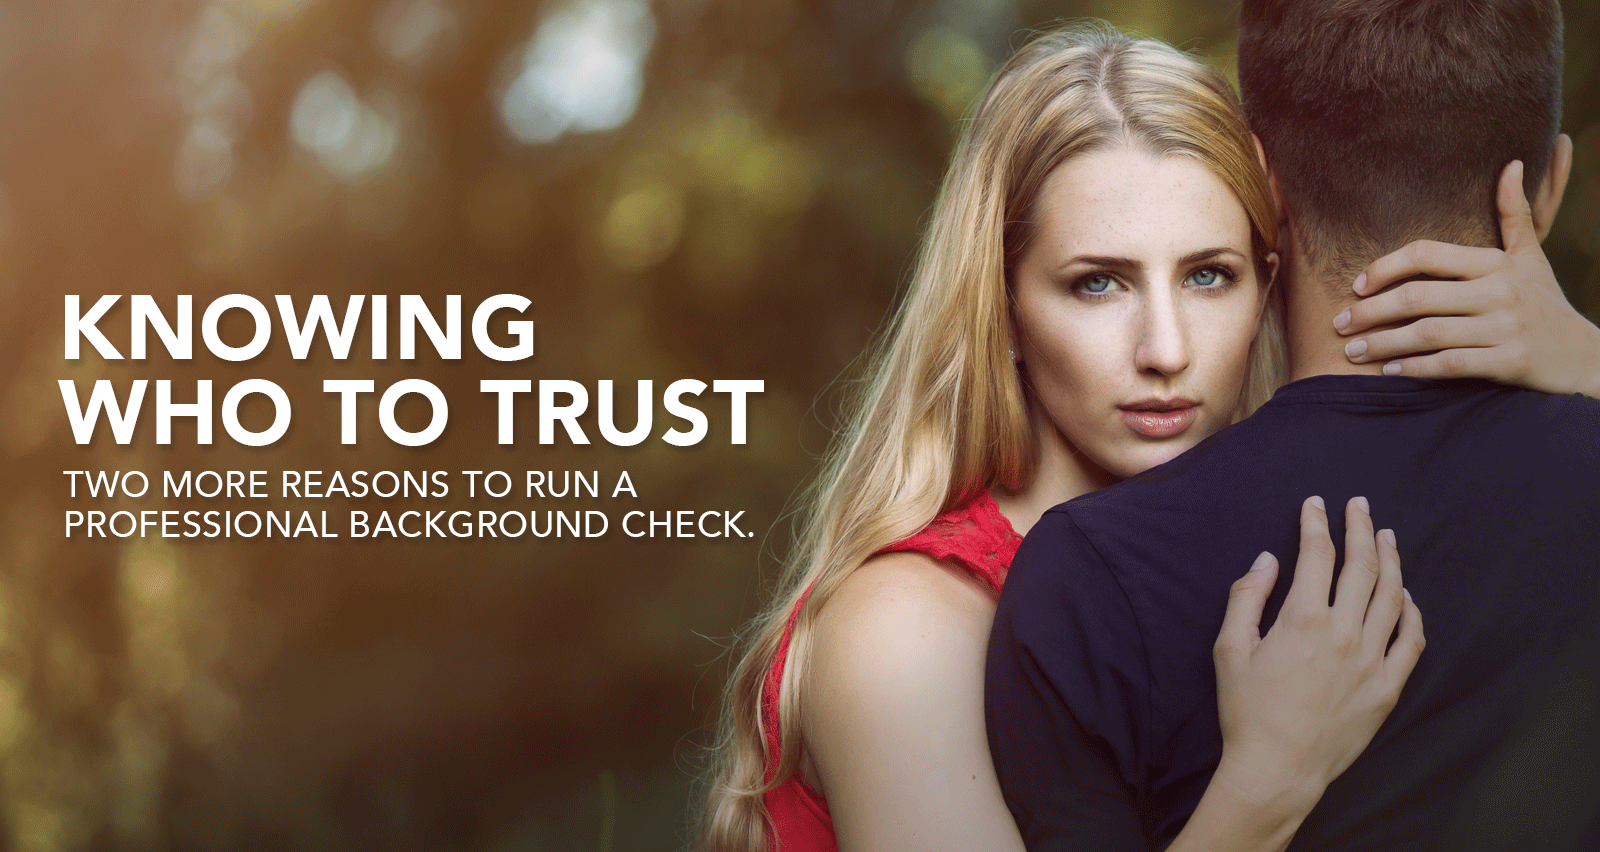 Knowing Who to Trust - Two More Reasons to do a Background Check